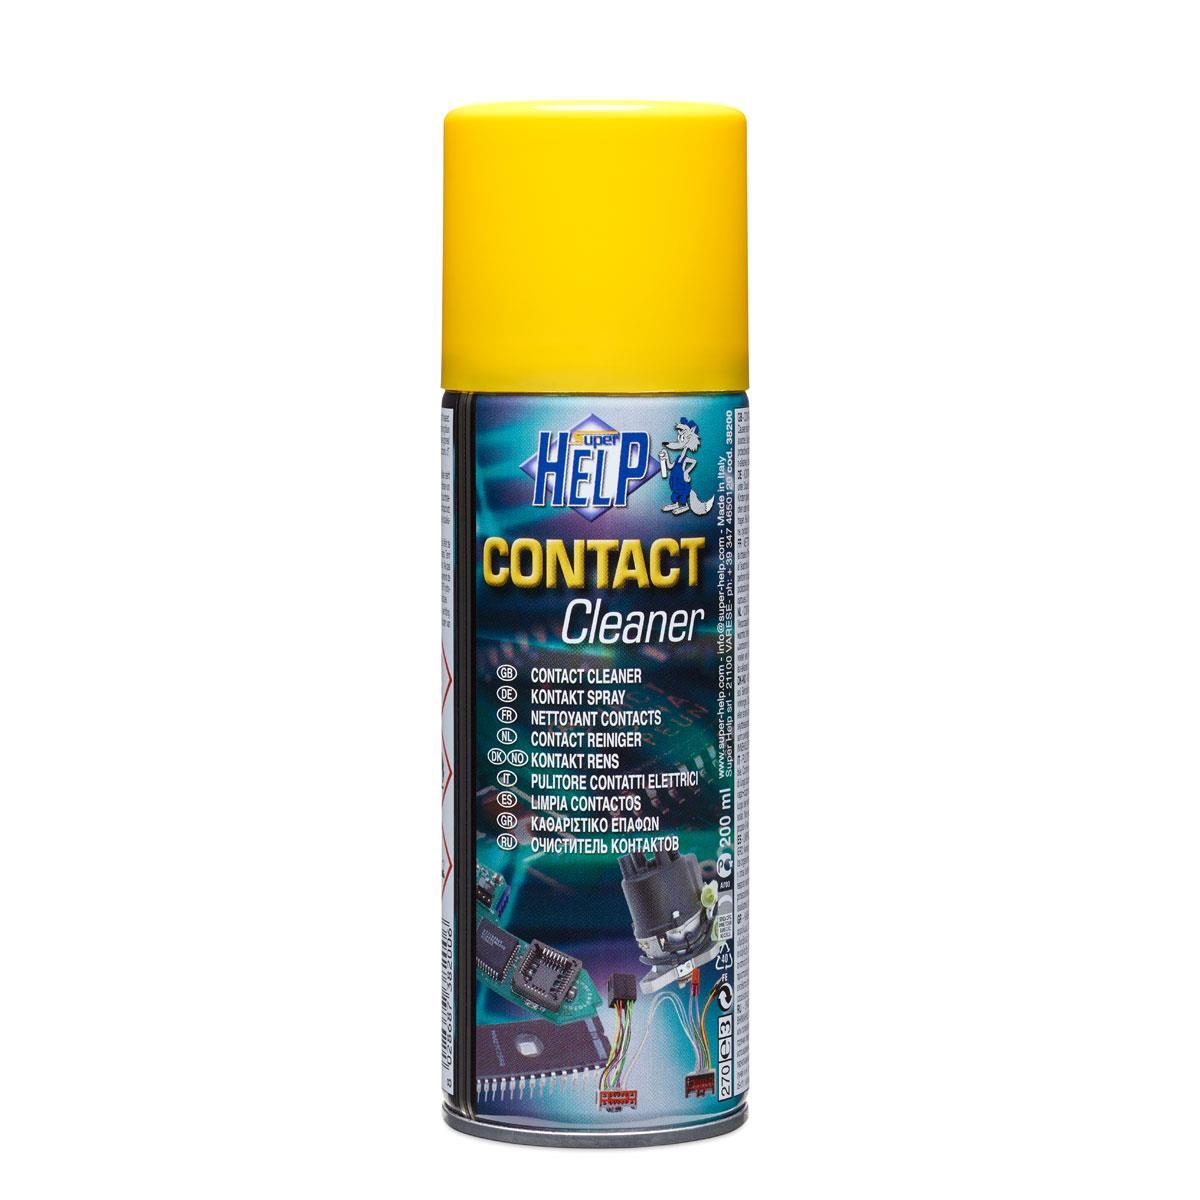 CONTACT CLEANER 0 Super Help